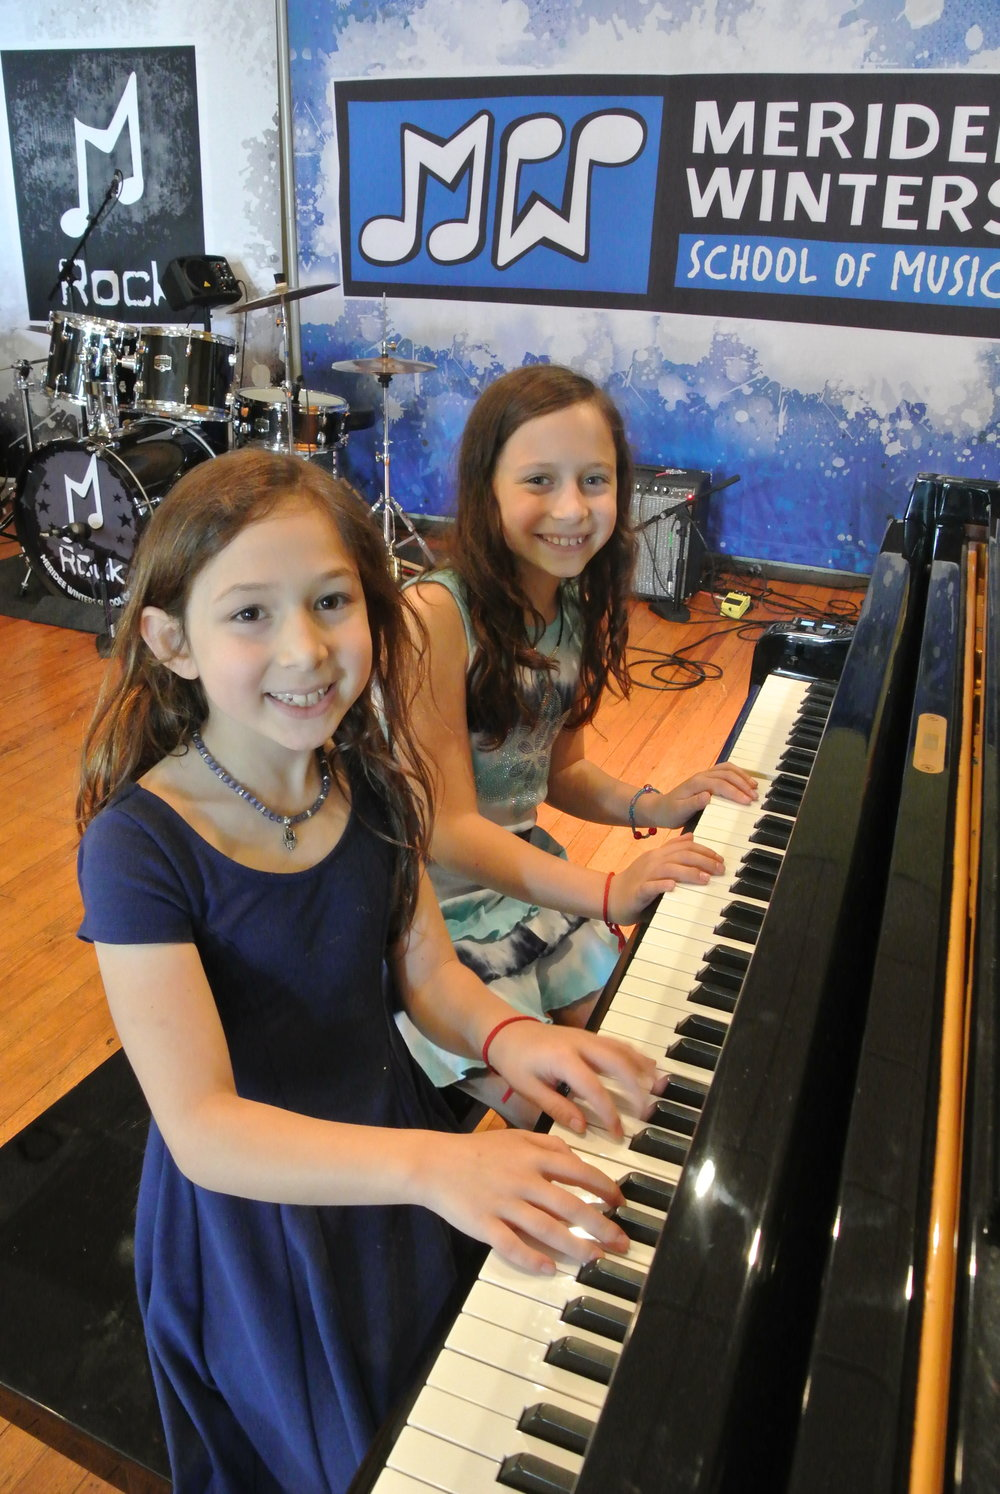 Main Line Piano Lessons with Meridee Winters School of Music